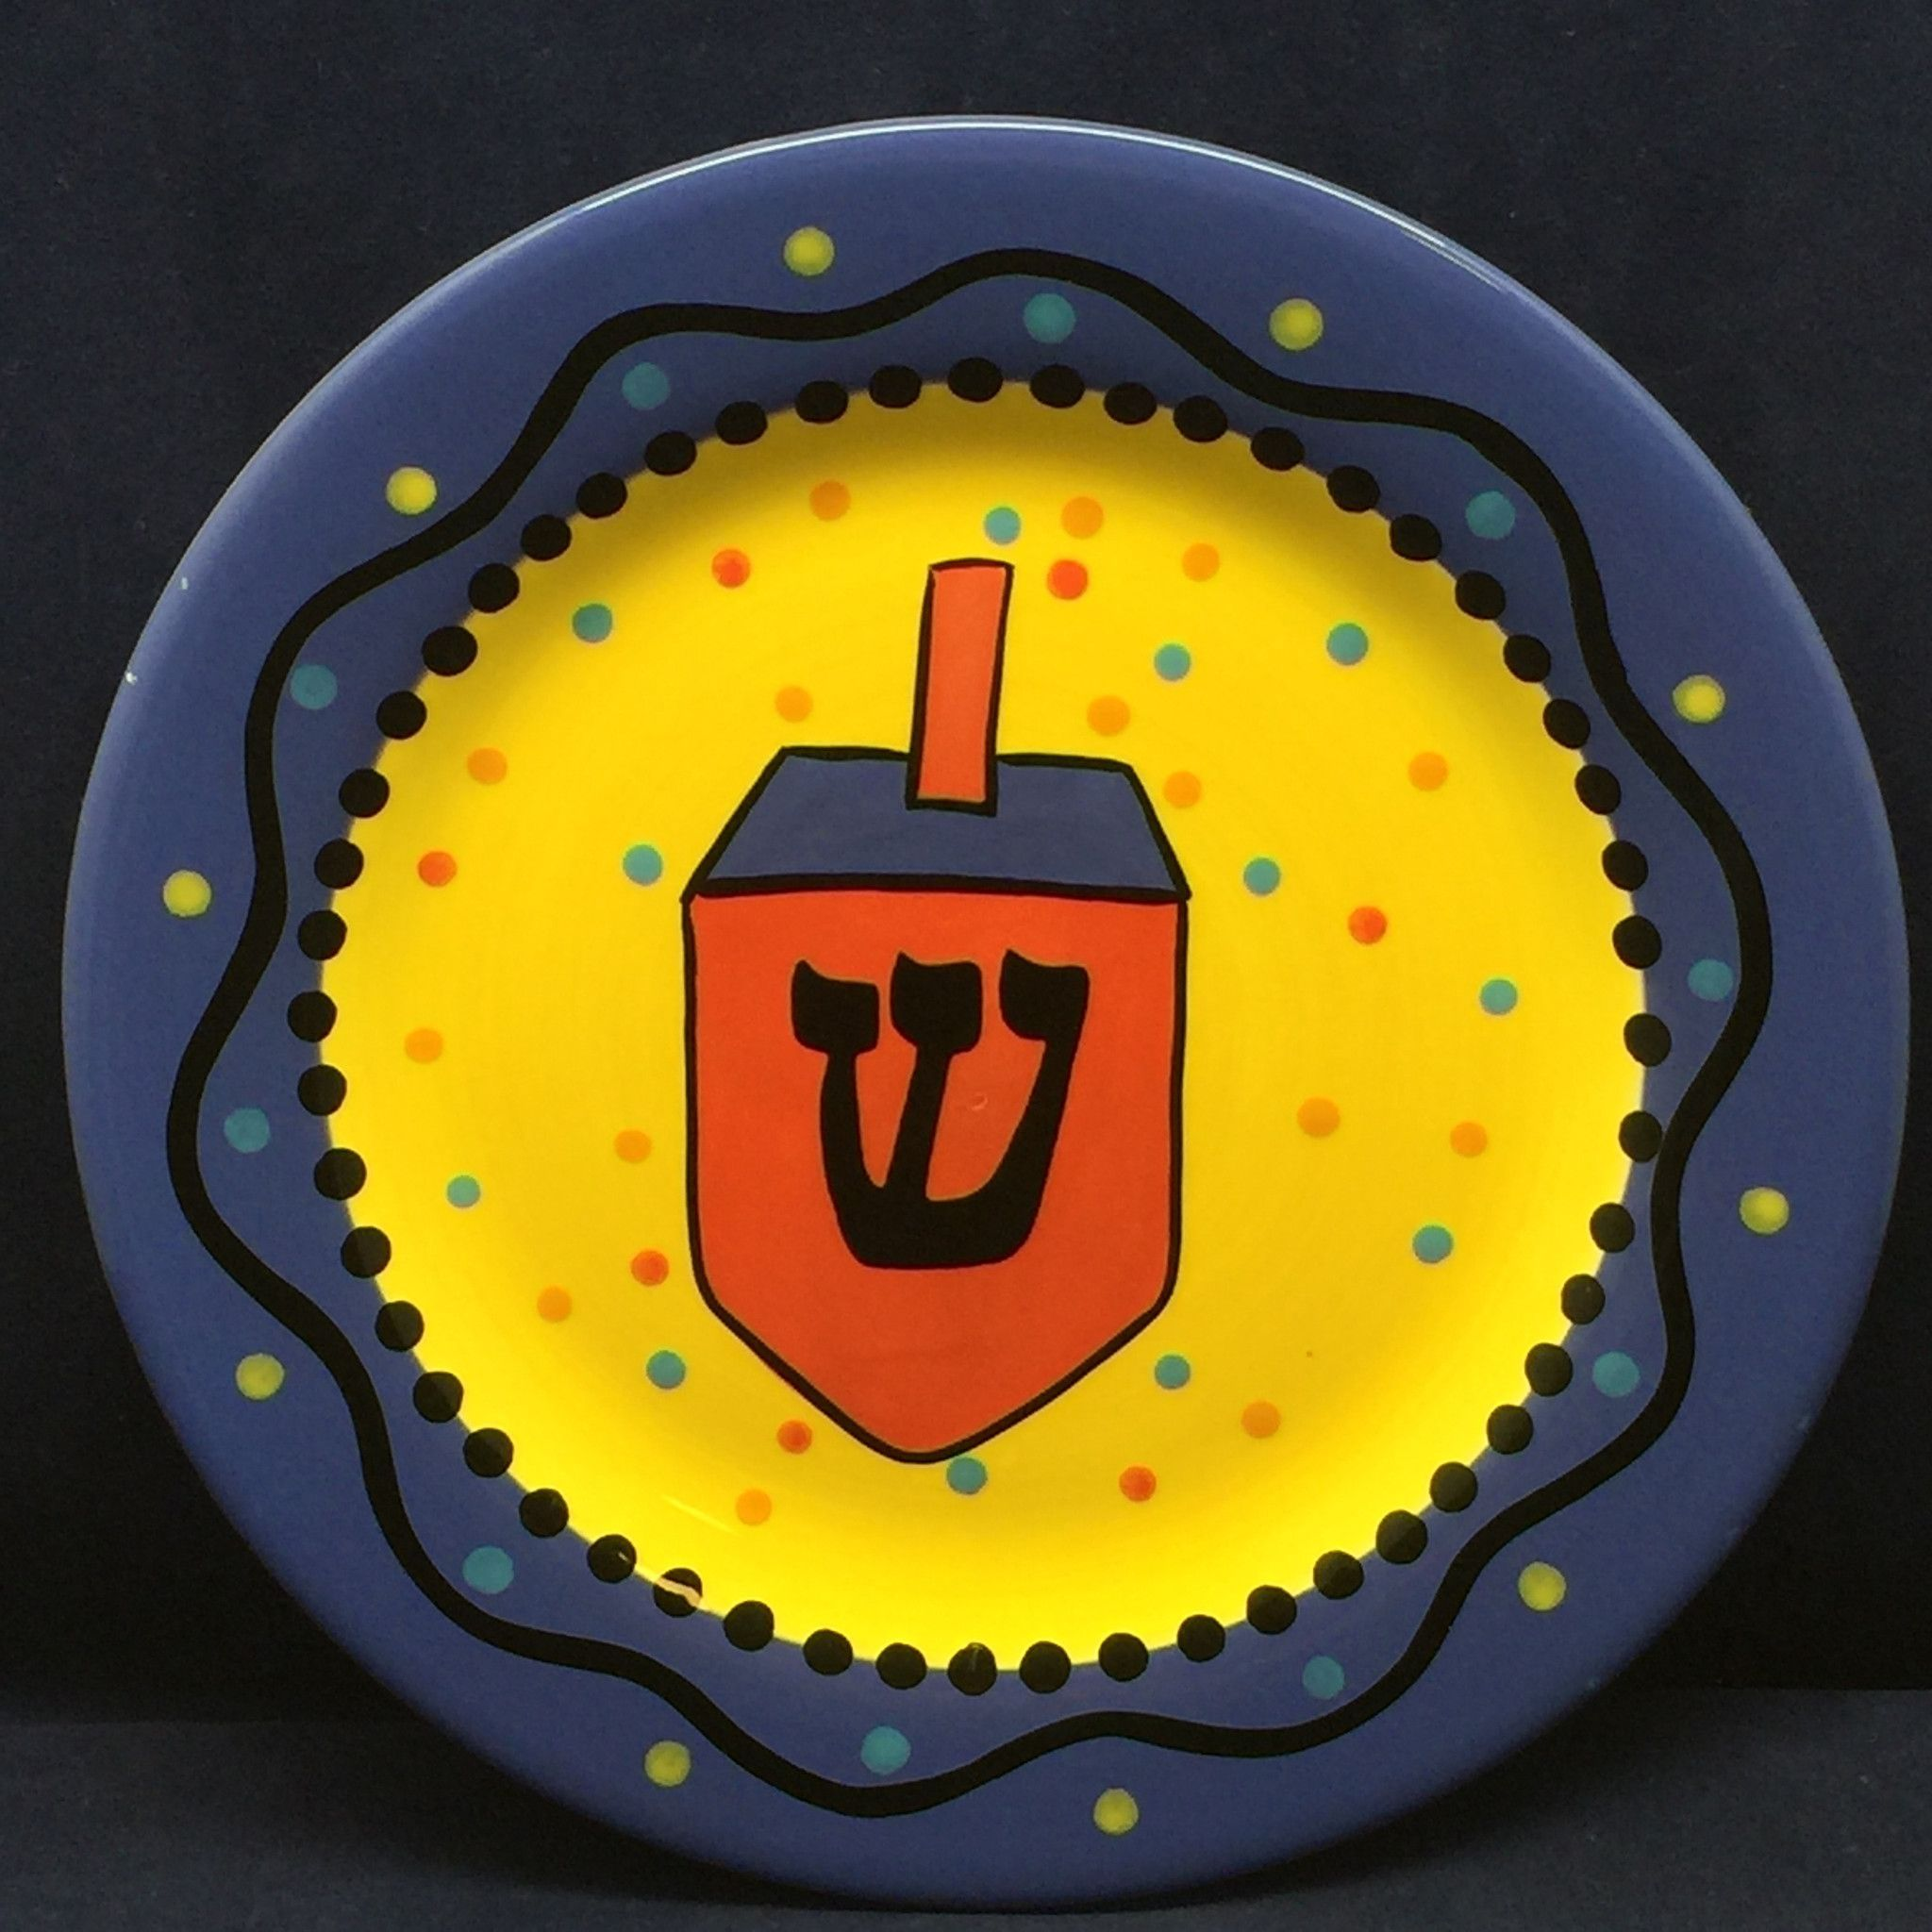 Chris Bubany Festival of Lights Dinner Plate Dreidel Hanukkah Blue SHIN Hebrew Yellow & Chris Bubany Festival of Lights Dinner Plate Dreidel Hanukkah Blue ...